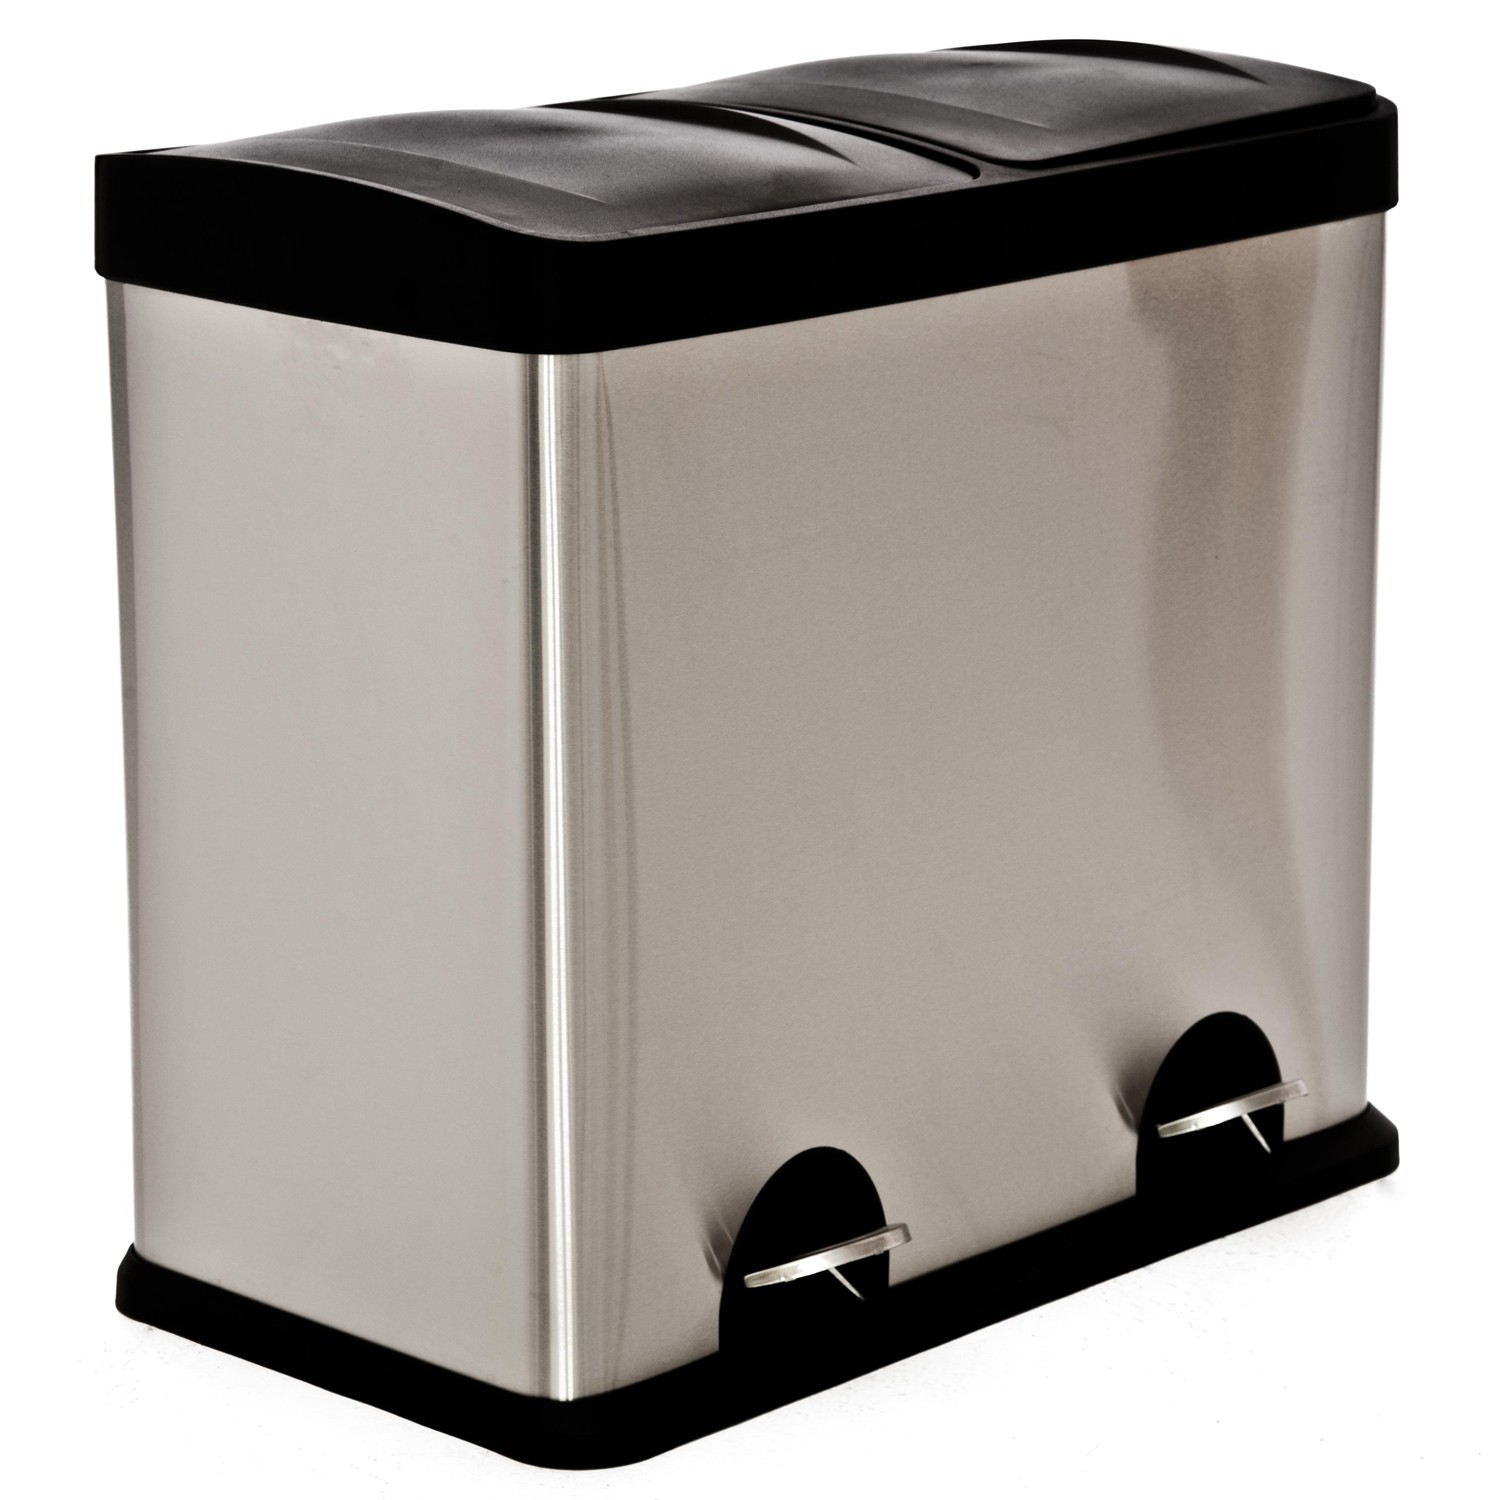 Stainless Steel Recycling Bins 40l Recycle Bin Stainless Steel